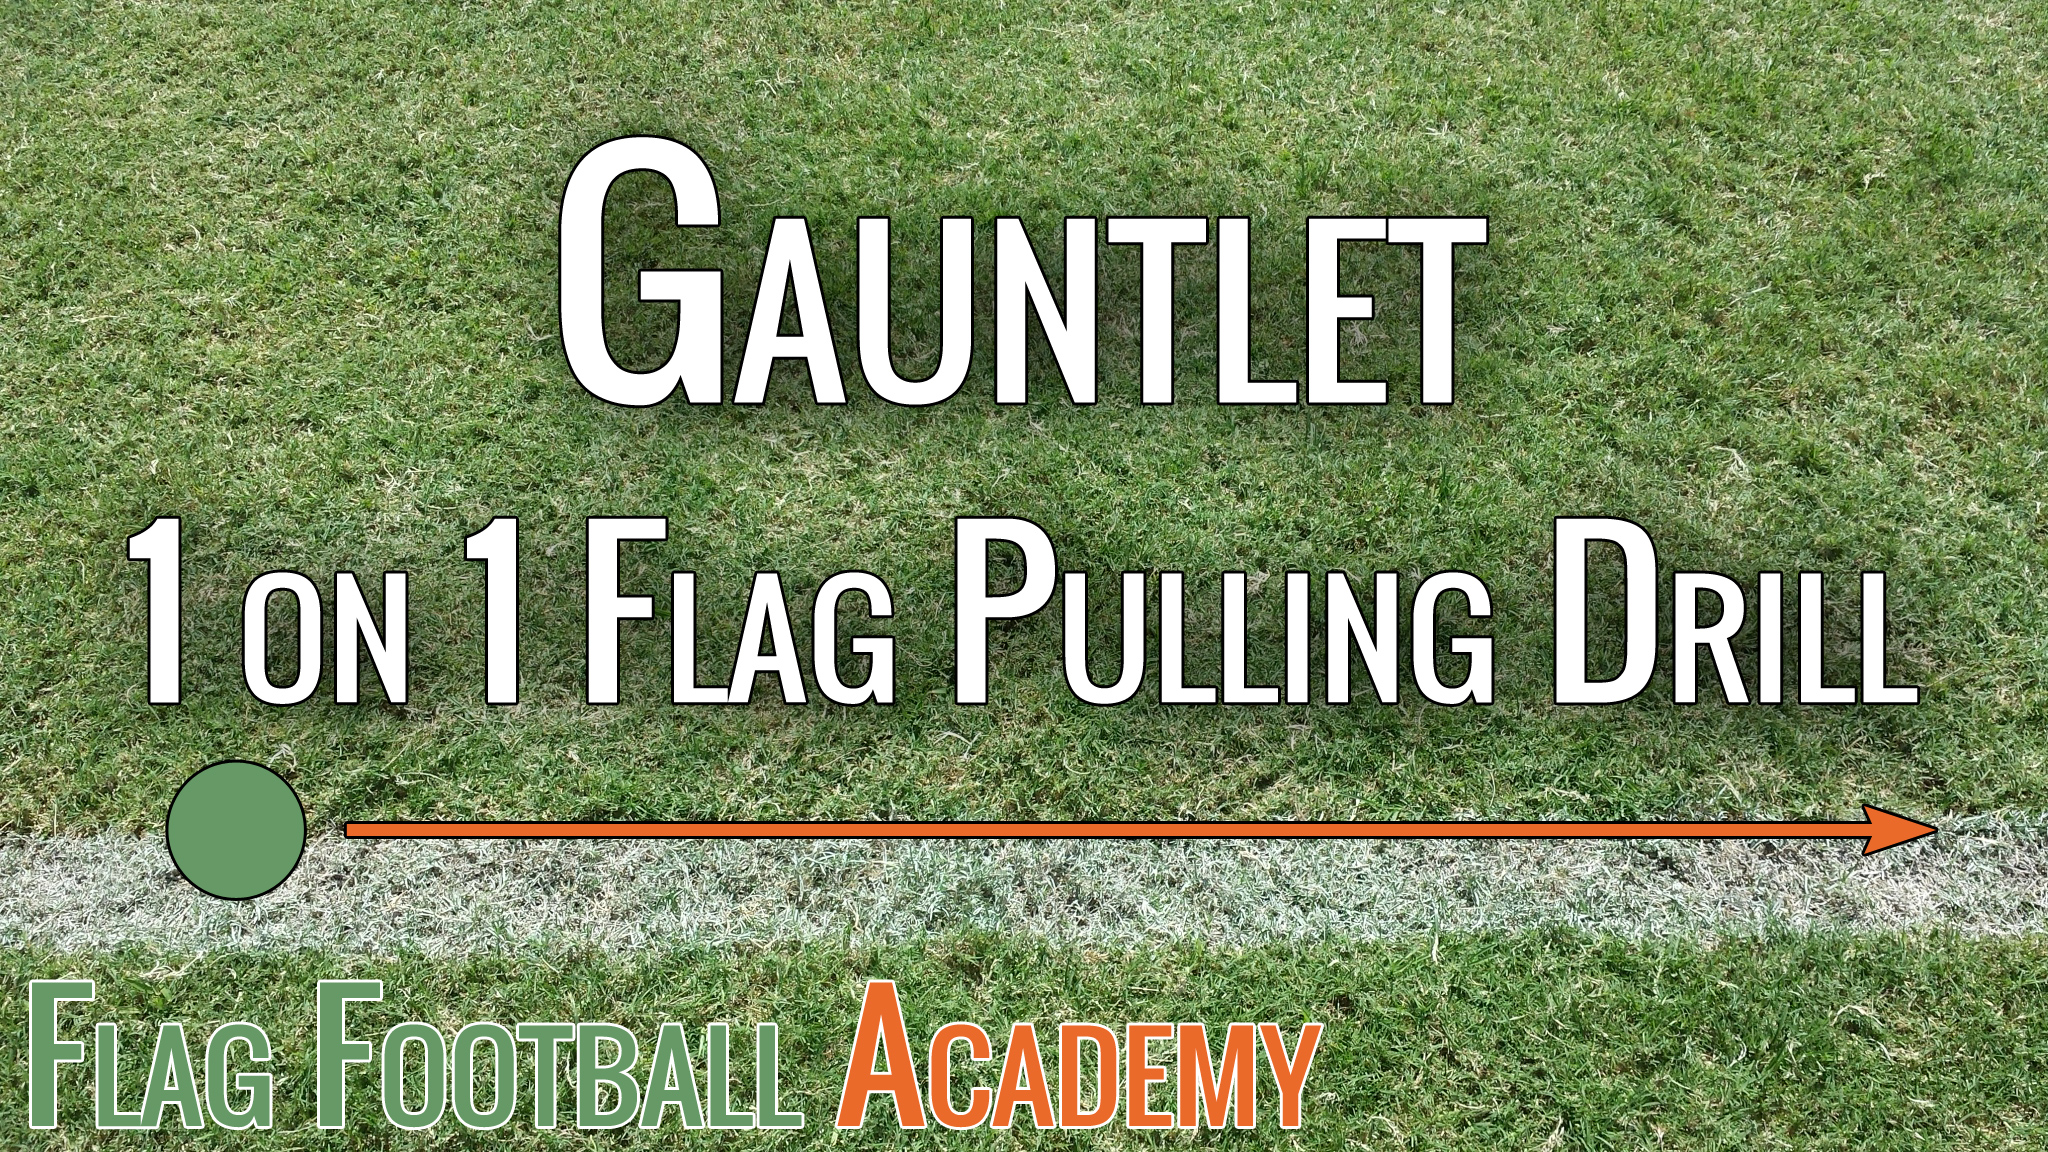 The Gauntlet – Flag Pulling Drill